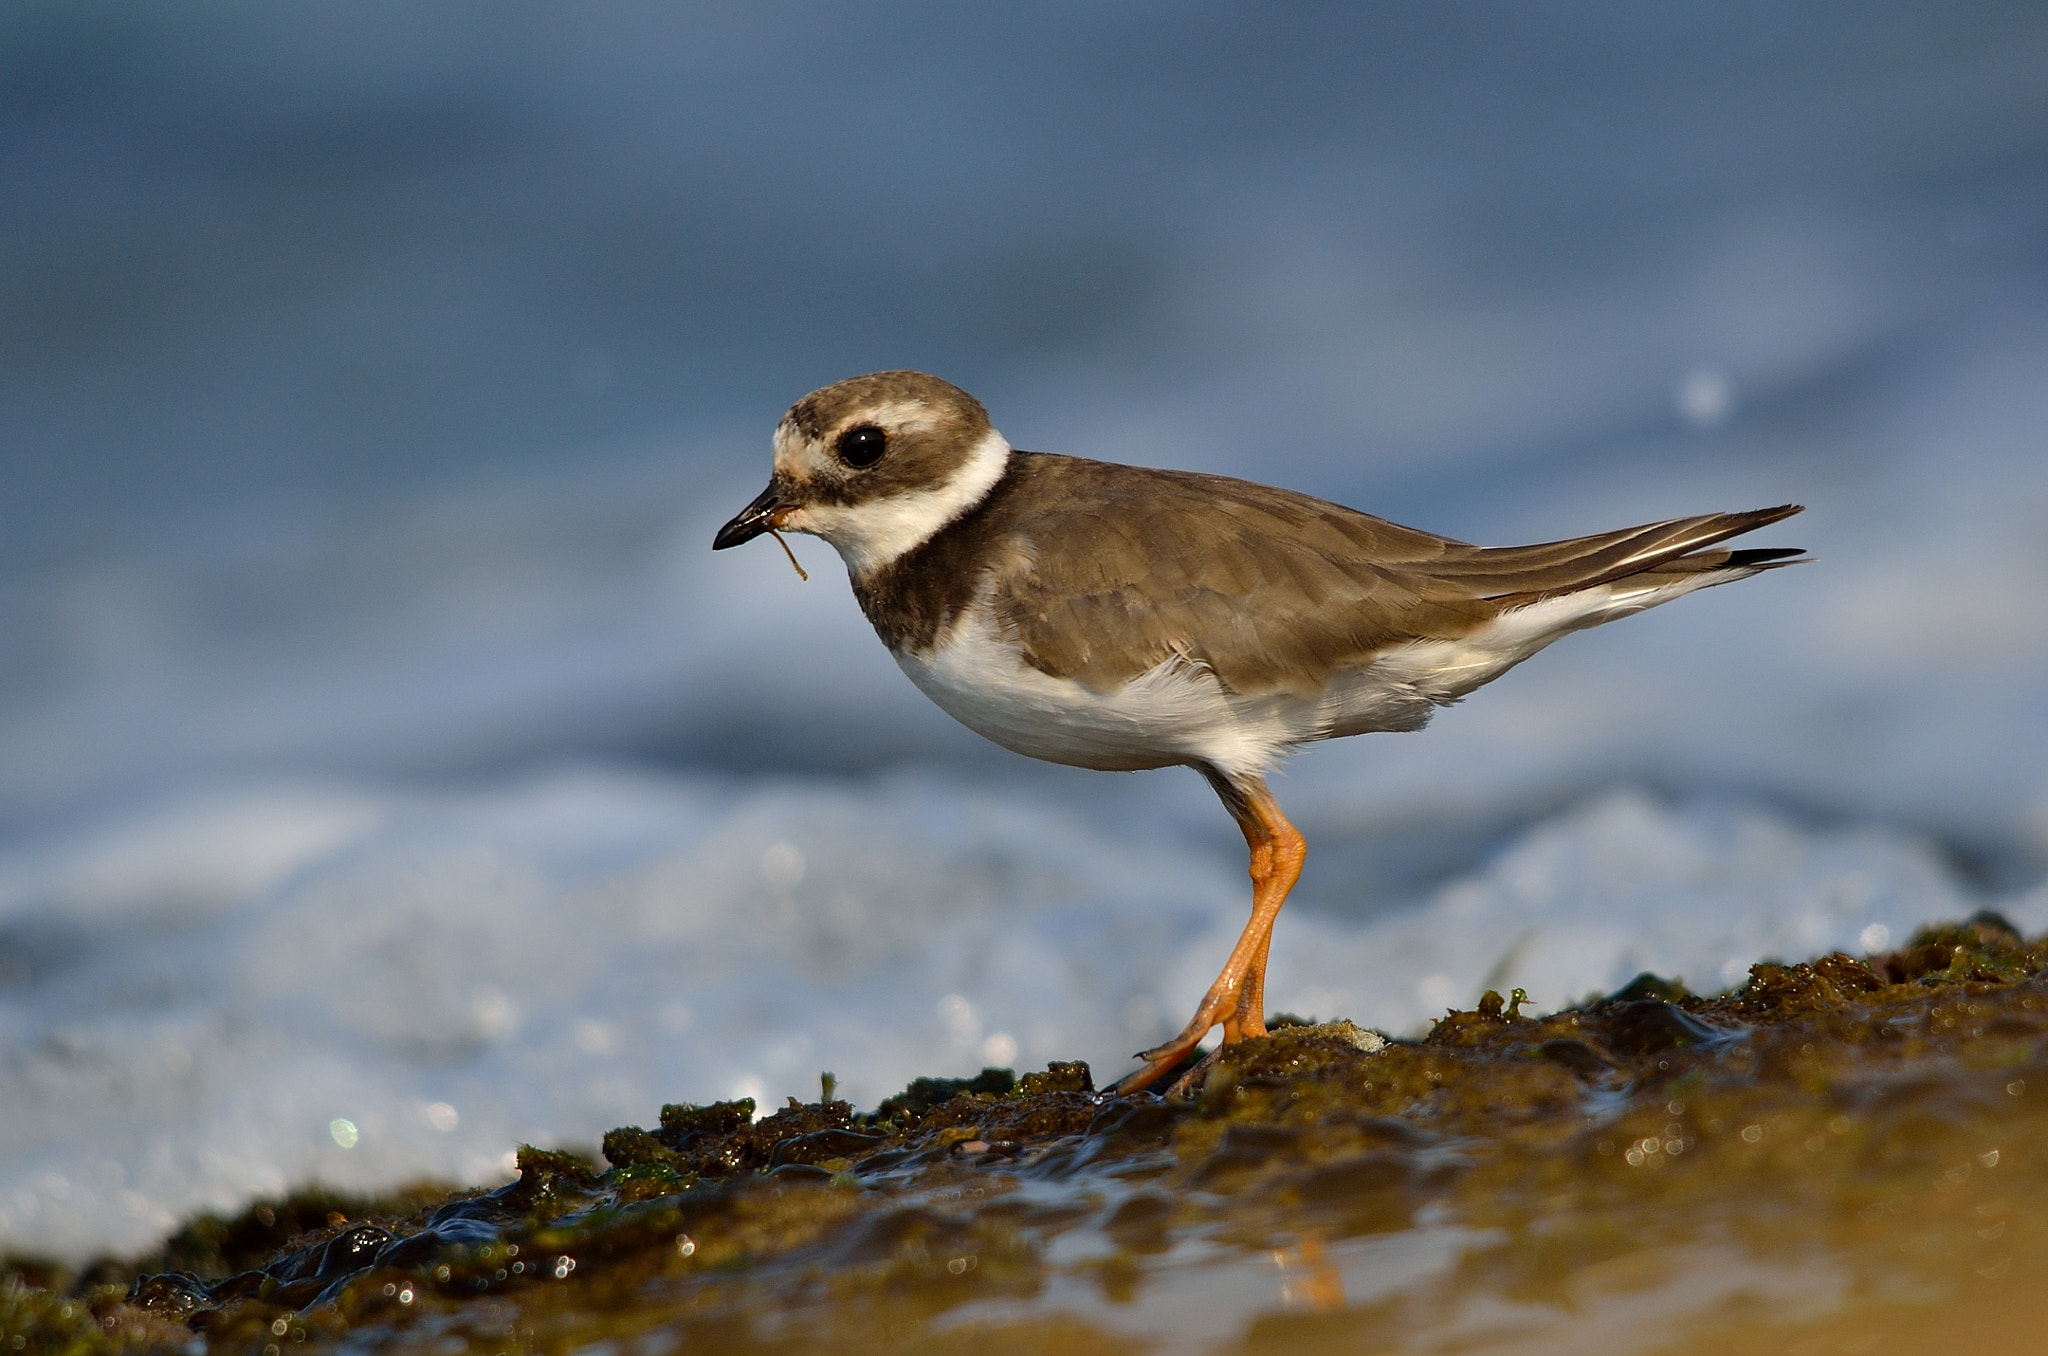 Photograph Common Ringed Plover (Charadrius hiaticula) by Daniel Berkowic on 500px